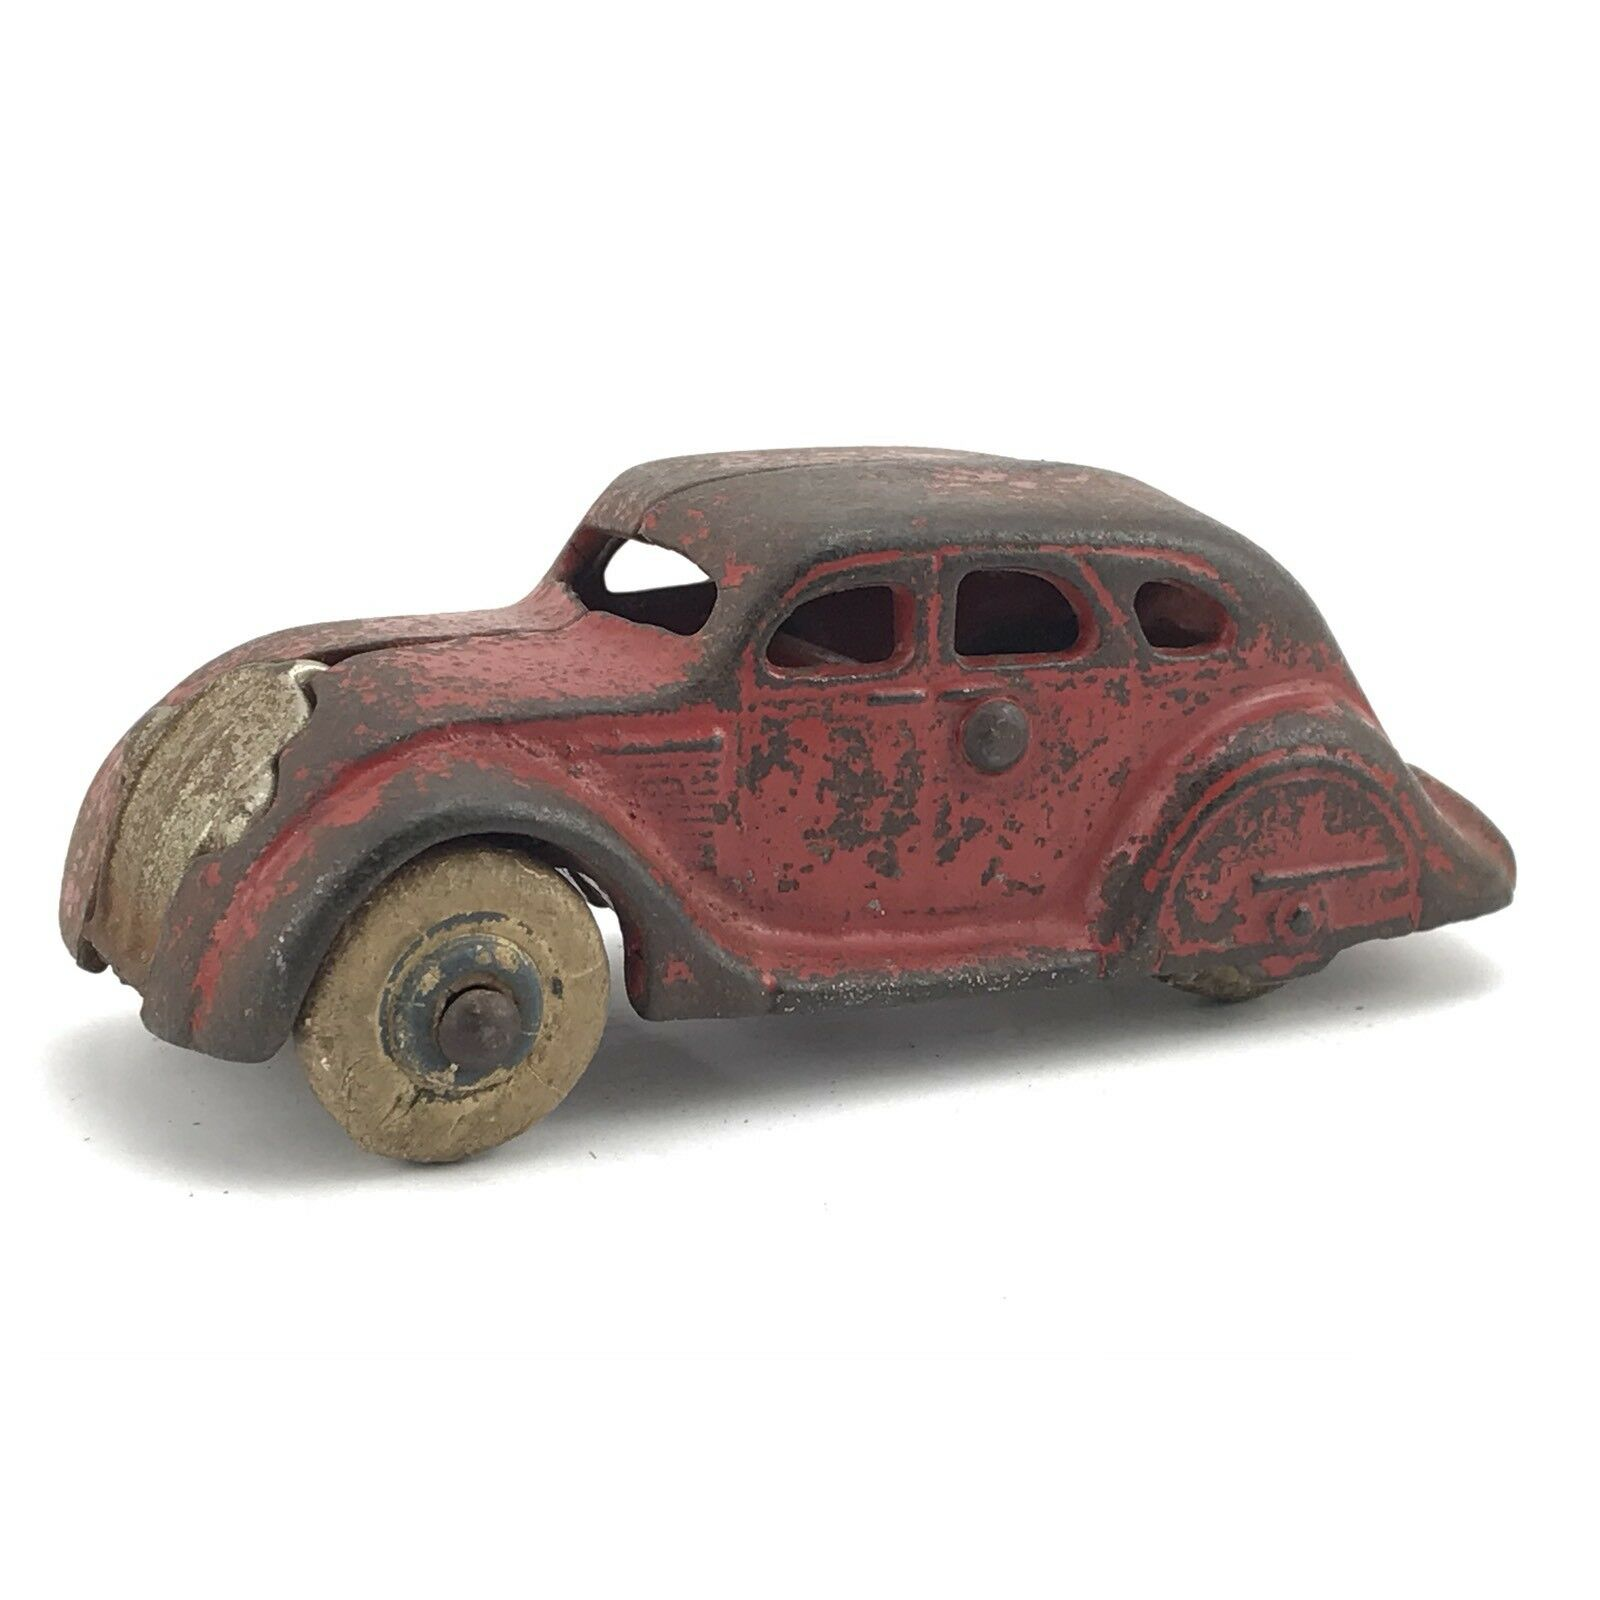 Vintage Arcade Cast Iron No 146 Toy Car With Rubber Tires